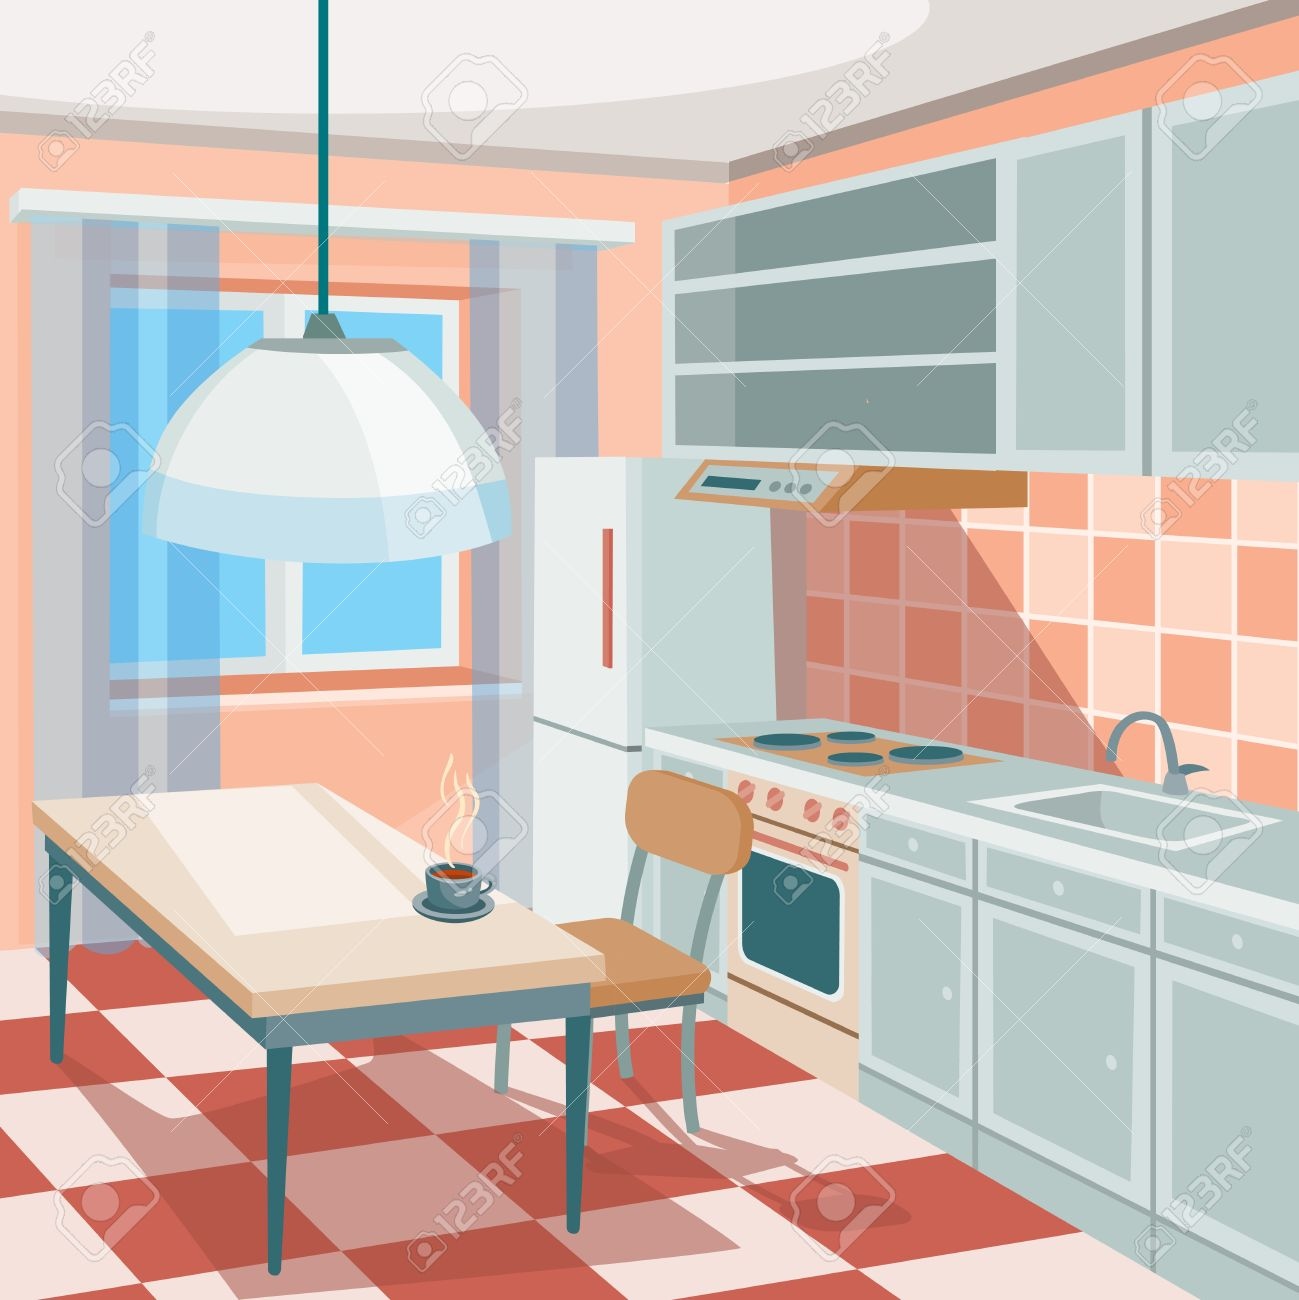 Vector Cartoon Illustration Of A Kitchen Interior With Kitchen ...